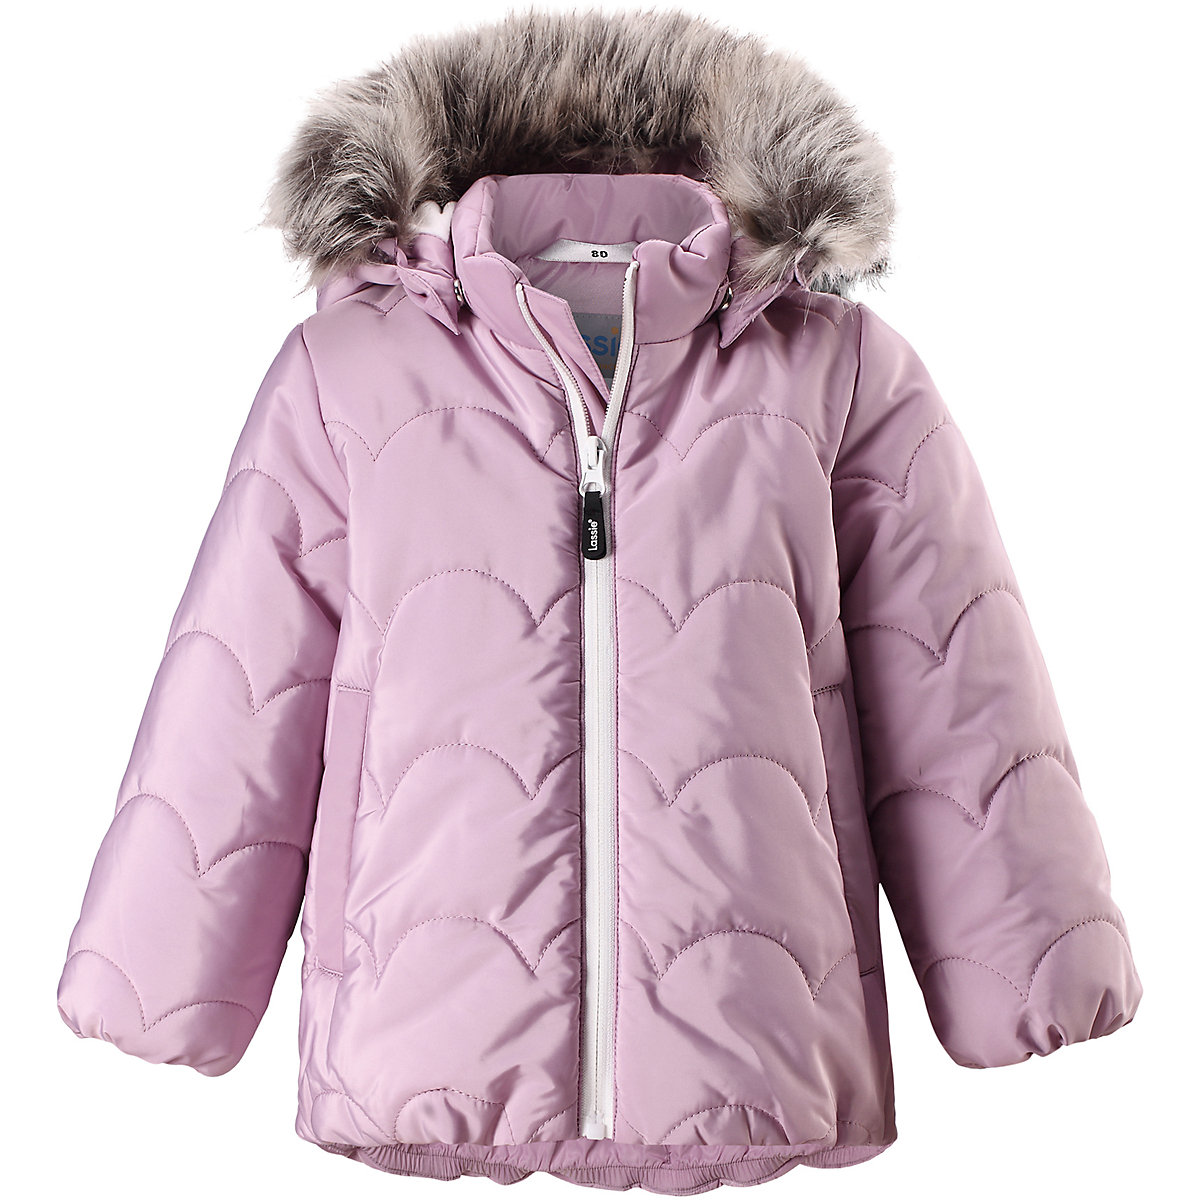 Jackets & Coats LASSIE for girls 8629413 Jacket Coat Denim Cardigan Warm Children clothes Kids milancel 2017 winter parkas for girls baby clothes thicken lining kids coat warm children clothing girl parkas kids jackets